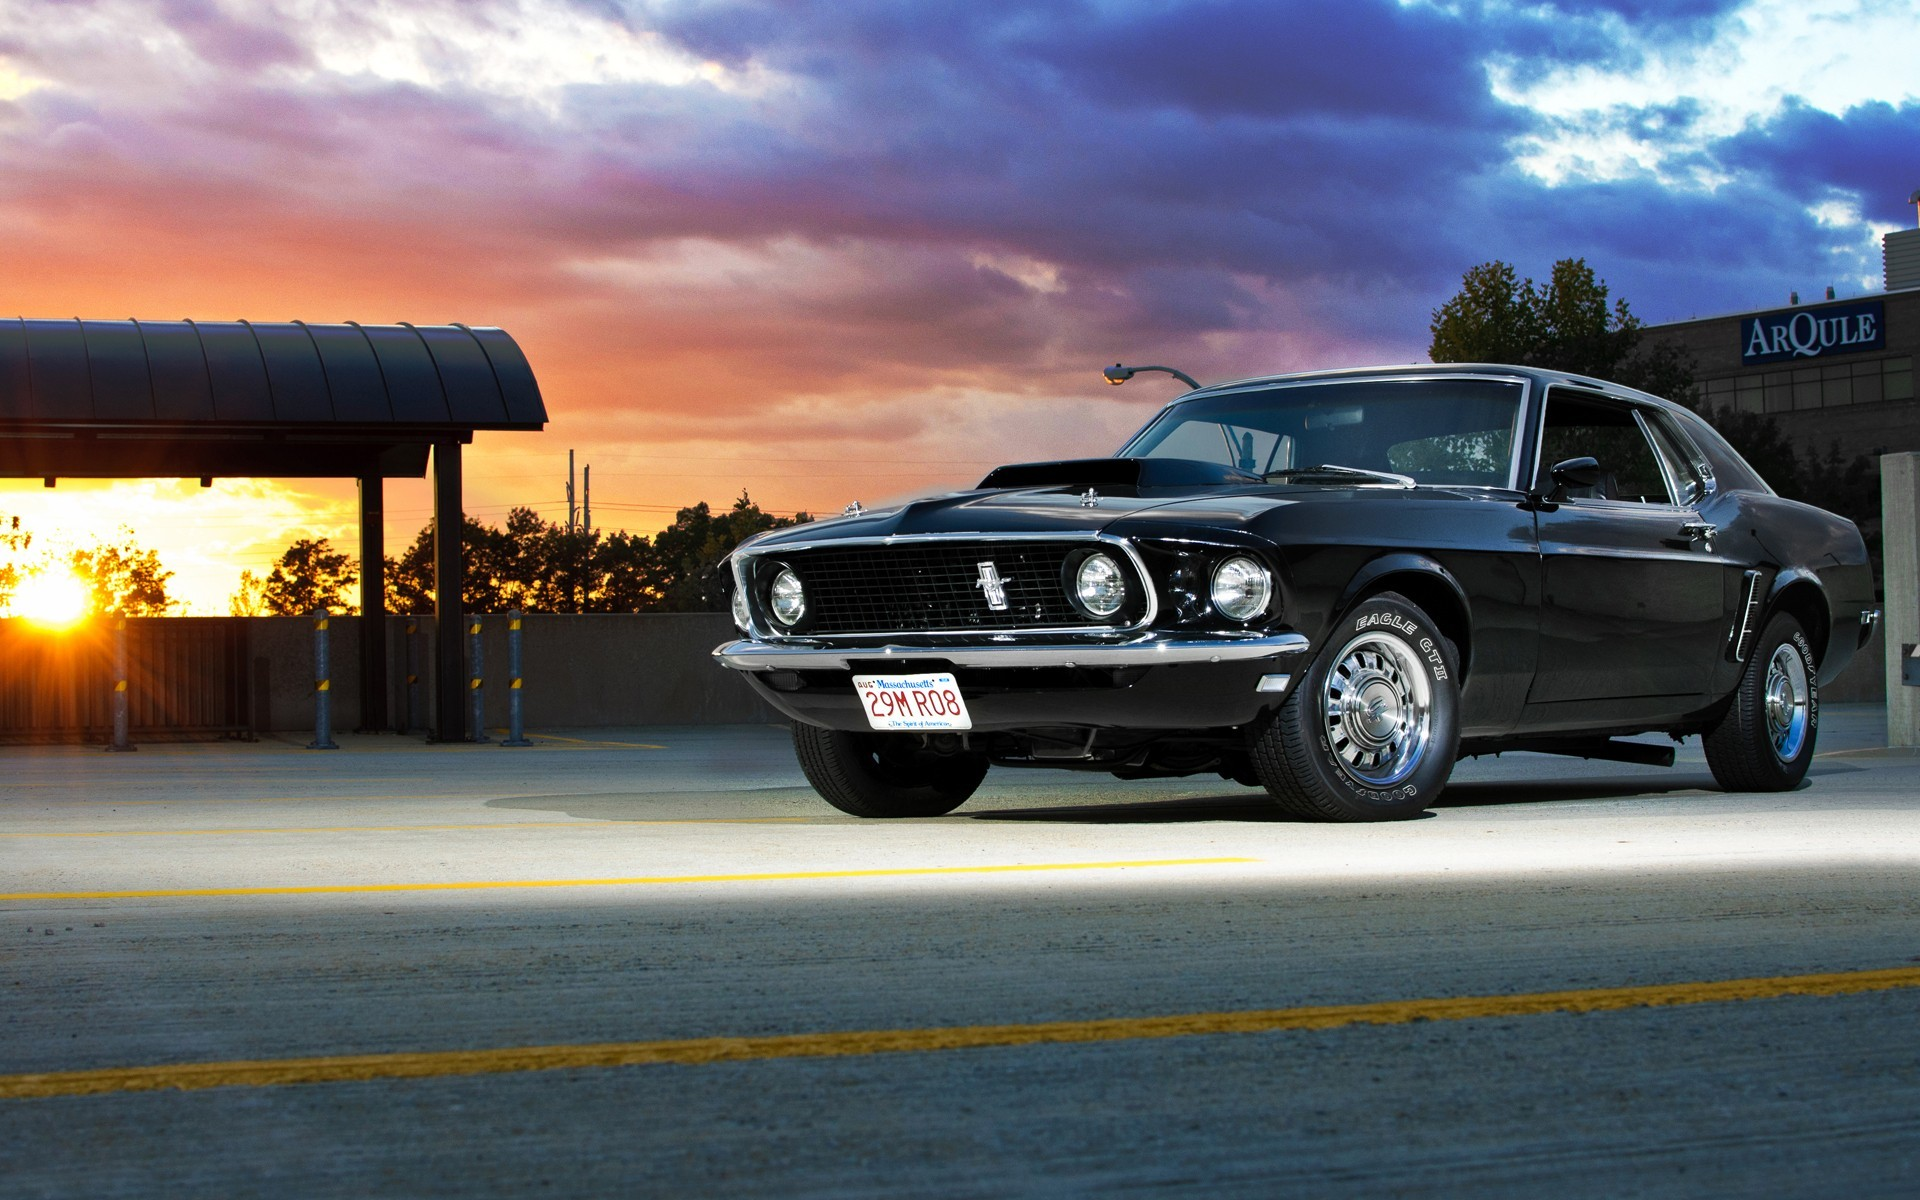 1920x1200 Muscle Car Wallpaper Desktop Background #5K7